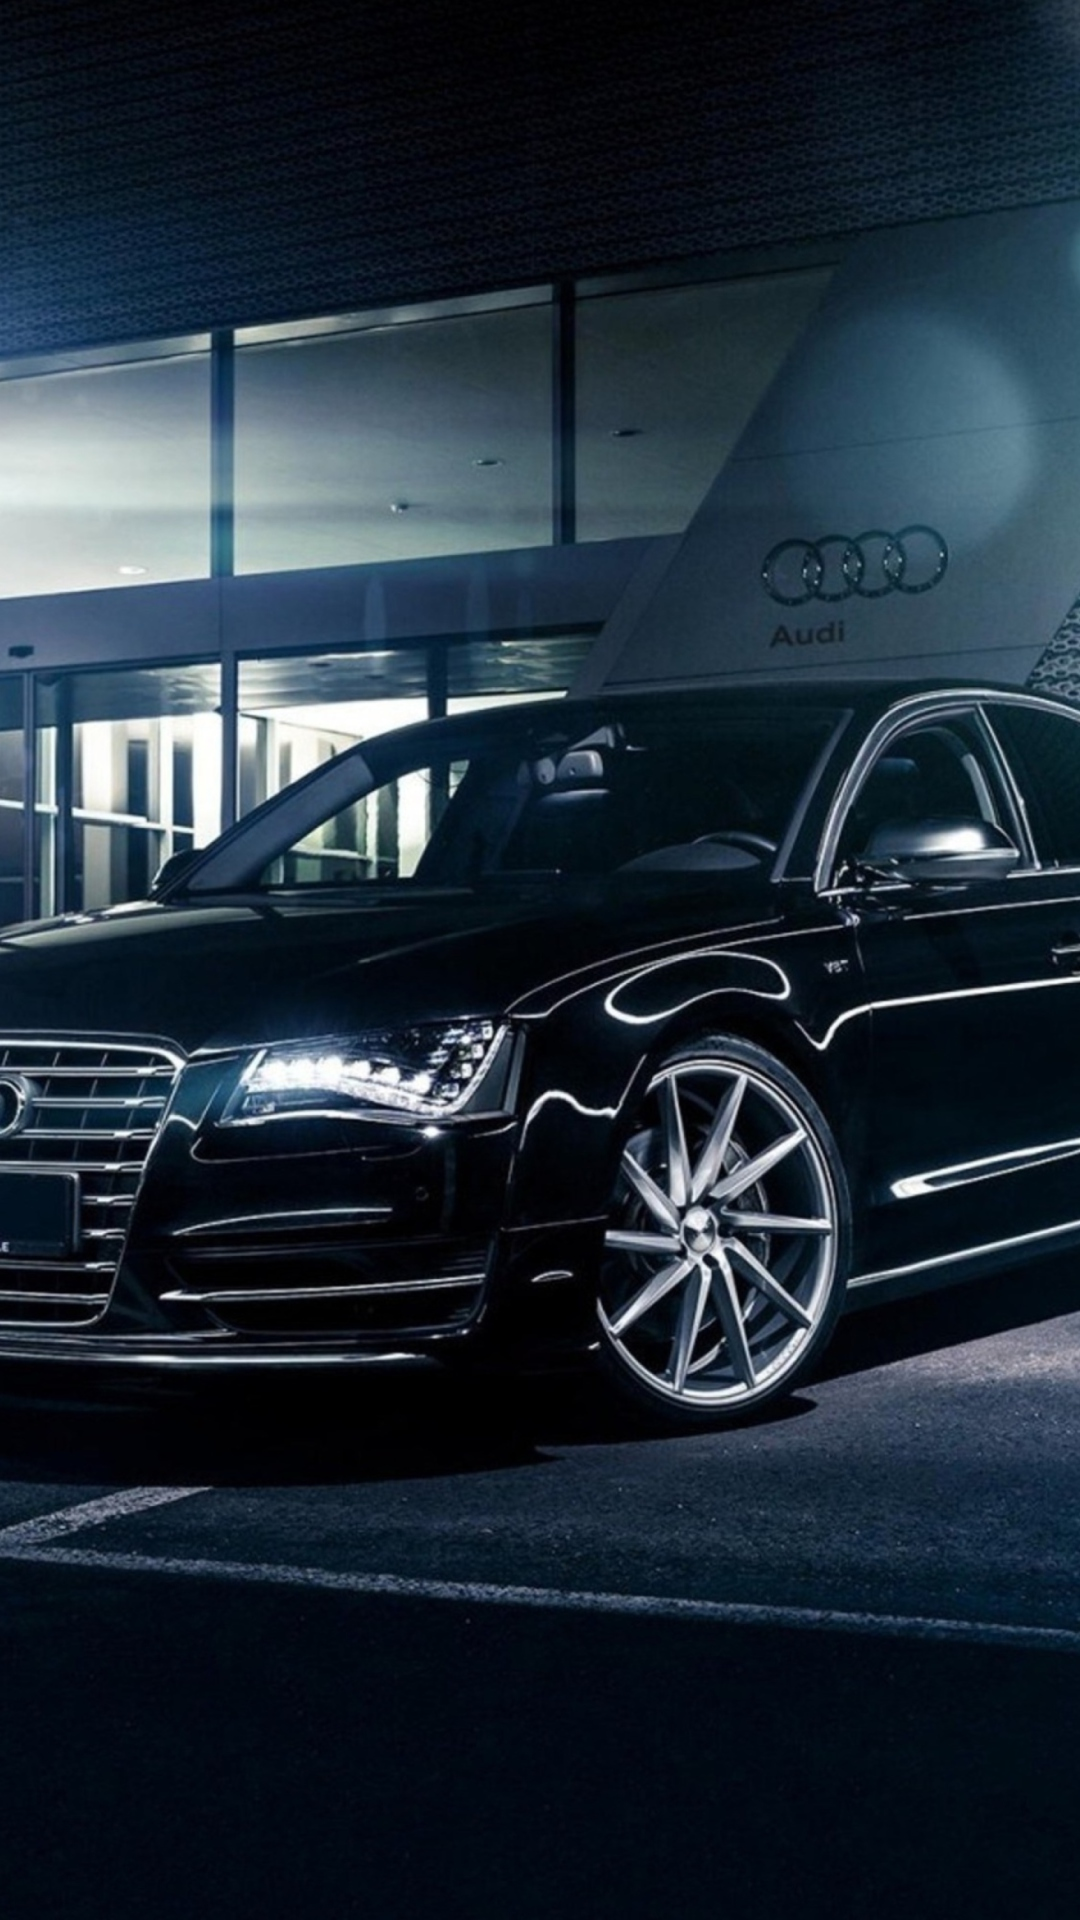 Jet Black Iphone Wallpaper Audi Iphone Wallpaper Hd Pixelstalk Net